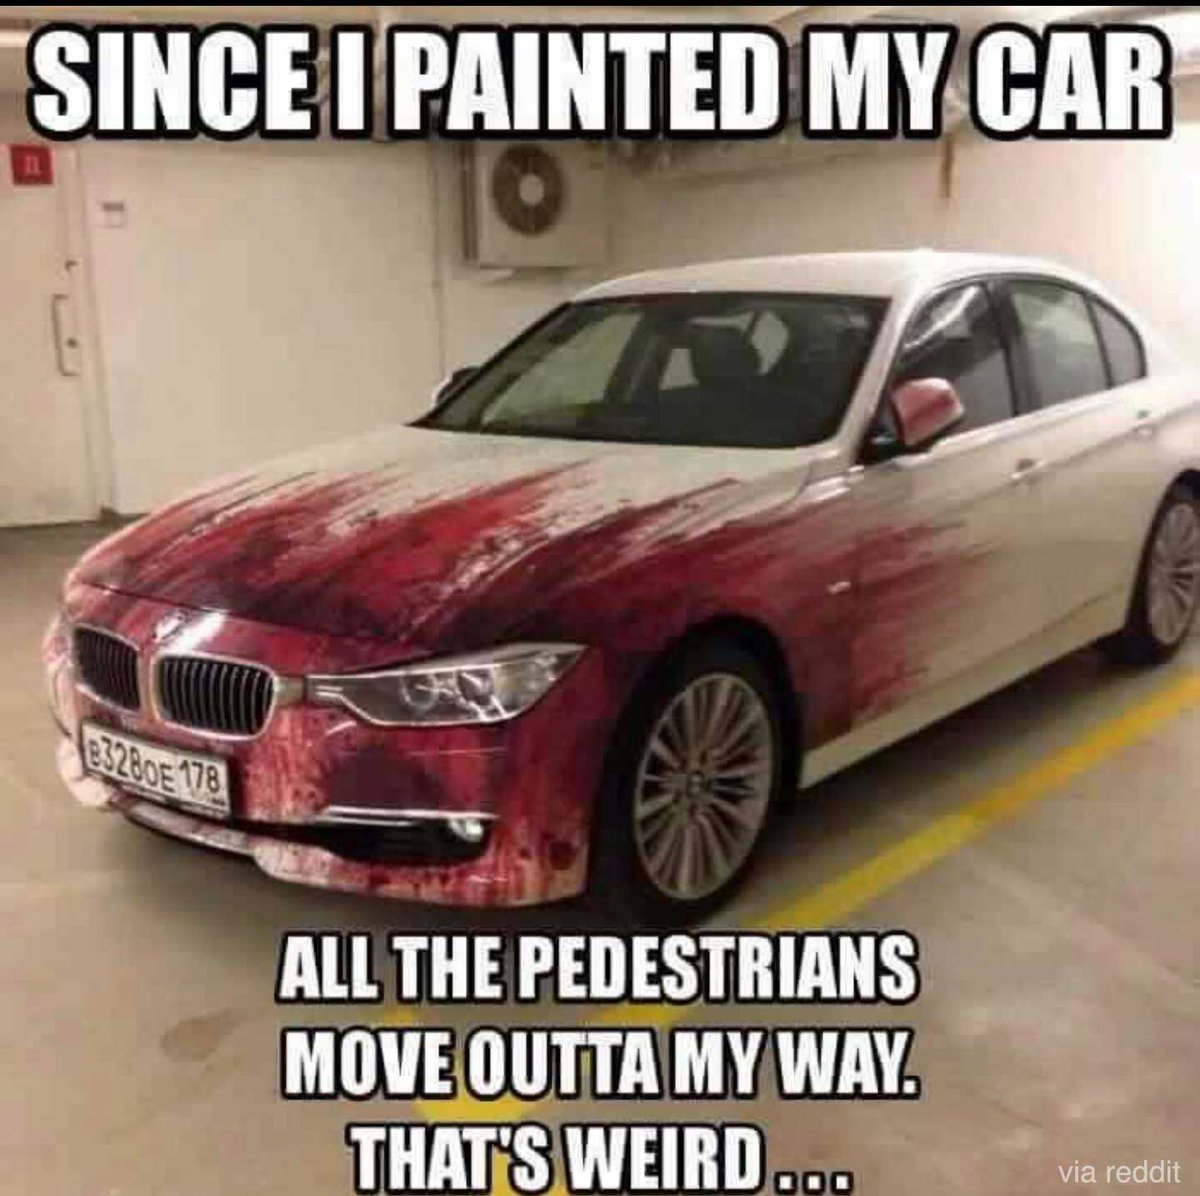 Since I painted my car...